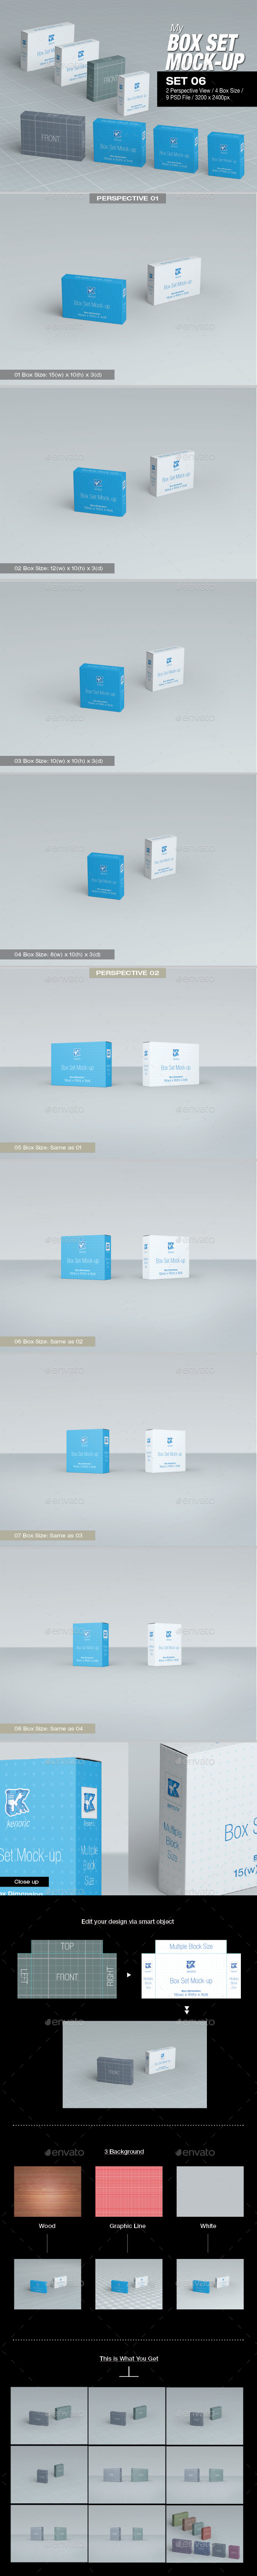 GraphicRiver MyBox Set Mock-up Set 06 8824349